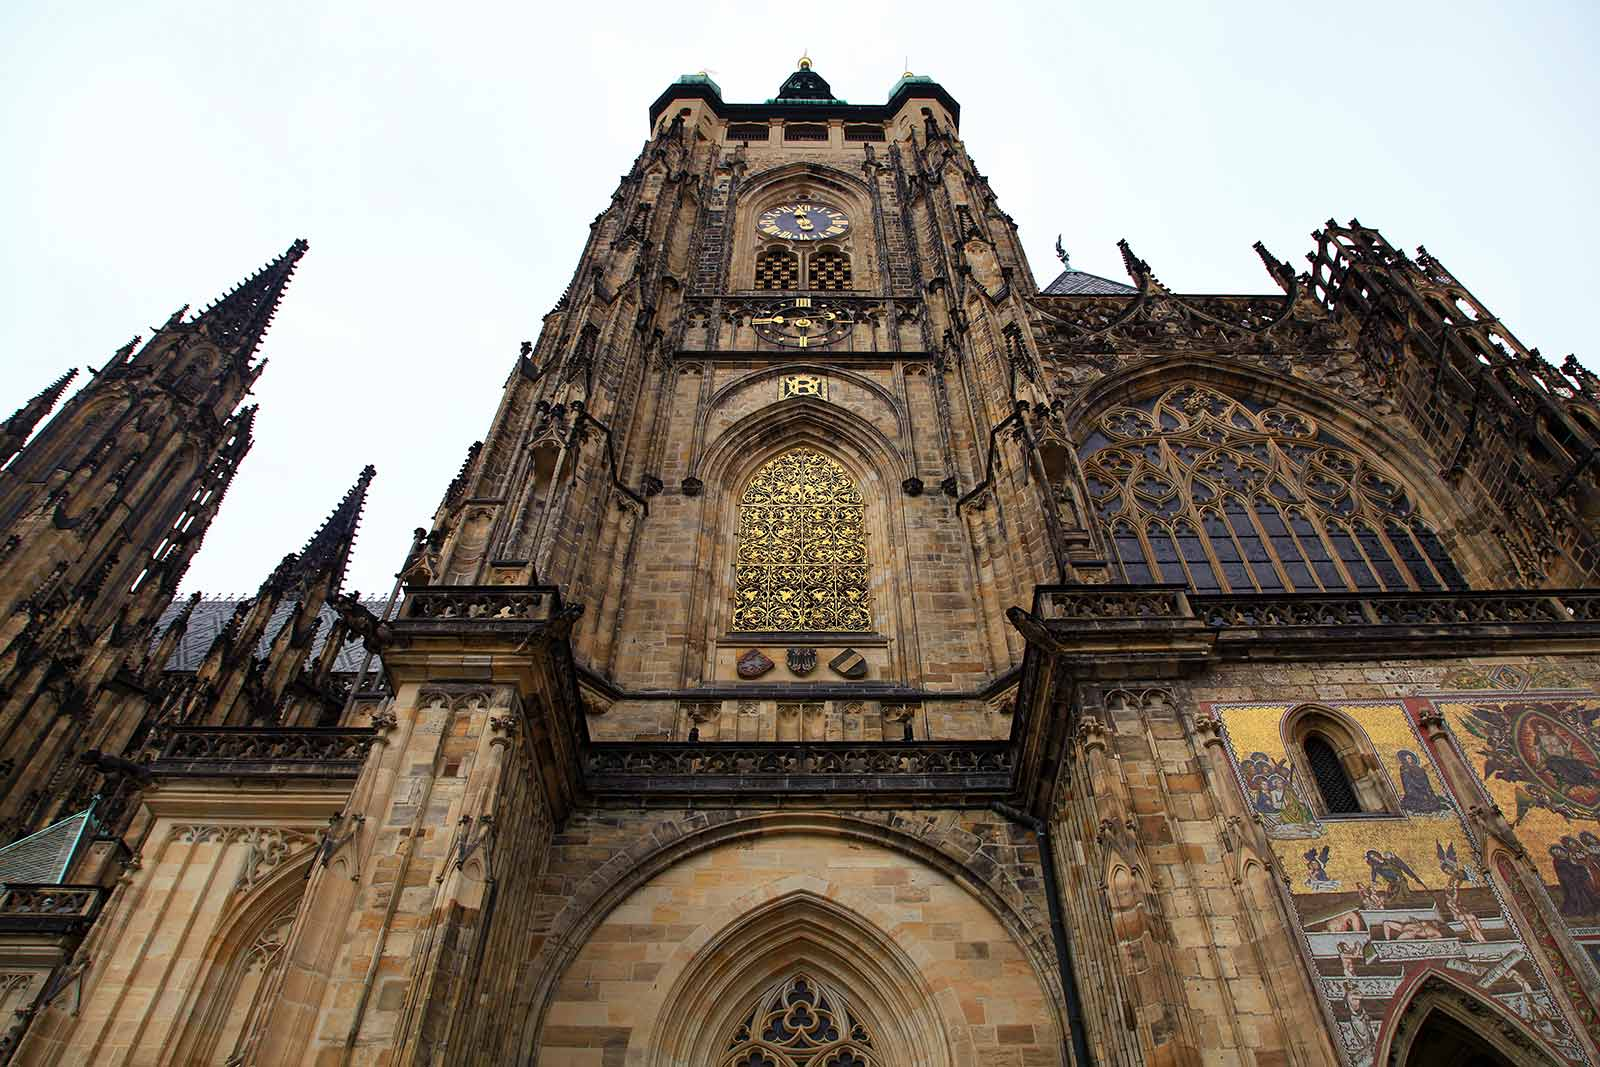 St. Vitus Cathedral is an excellent example of Gothic architecture and is the biggest and most important church in the Czech Republic..